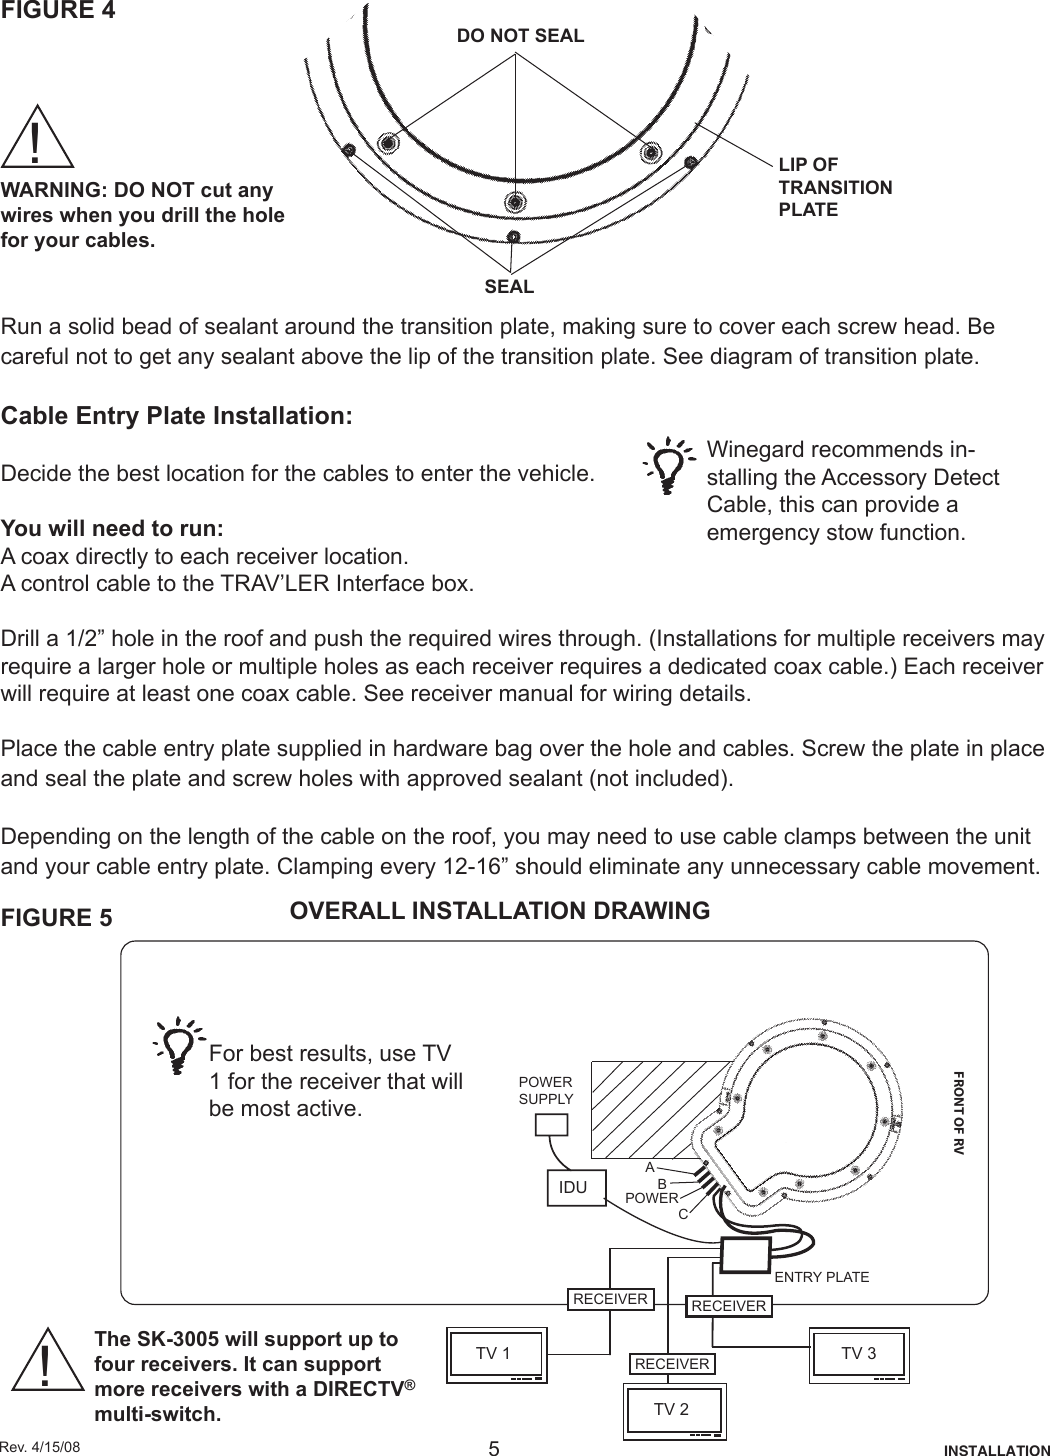 Winegard Satellite Tv System Sk 3005 Users Manual Multiple Receivers For Wiring Diagram Page 5 Of 12